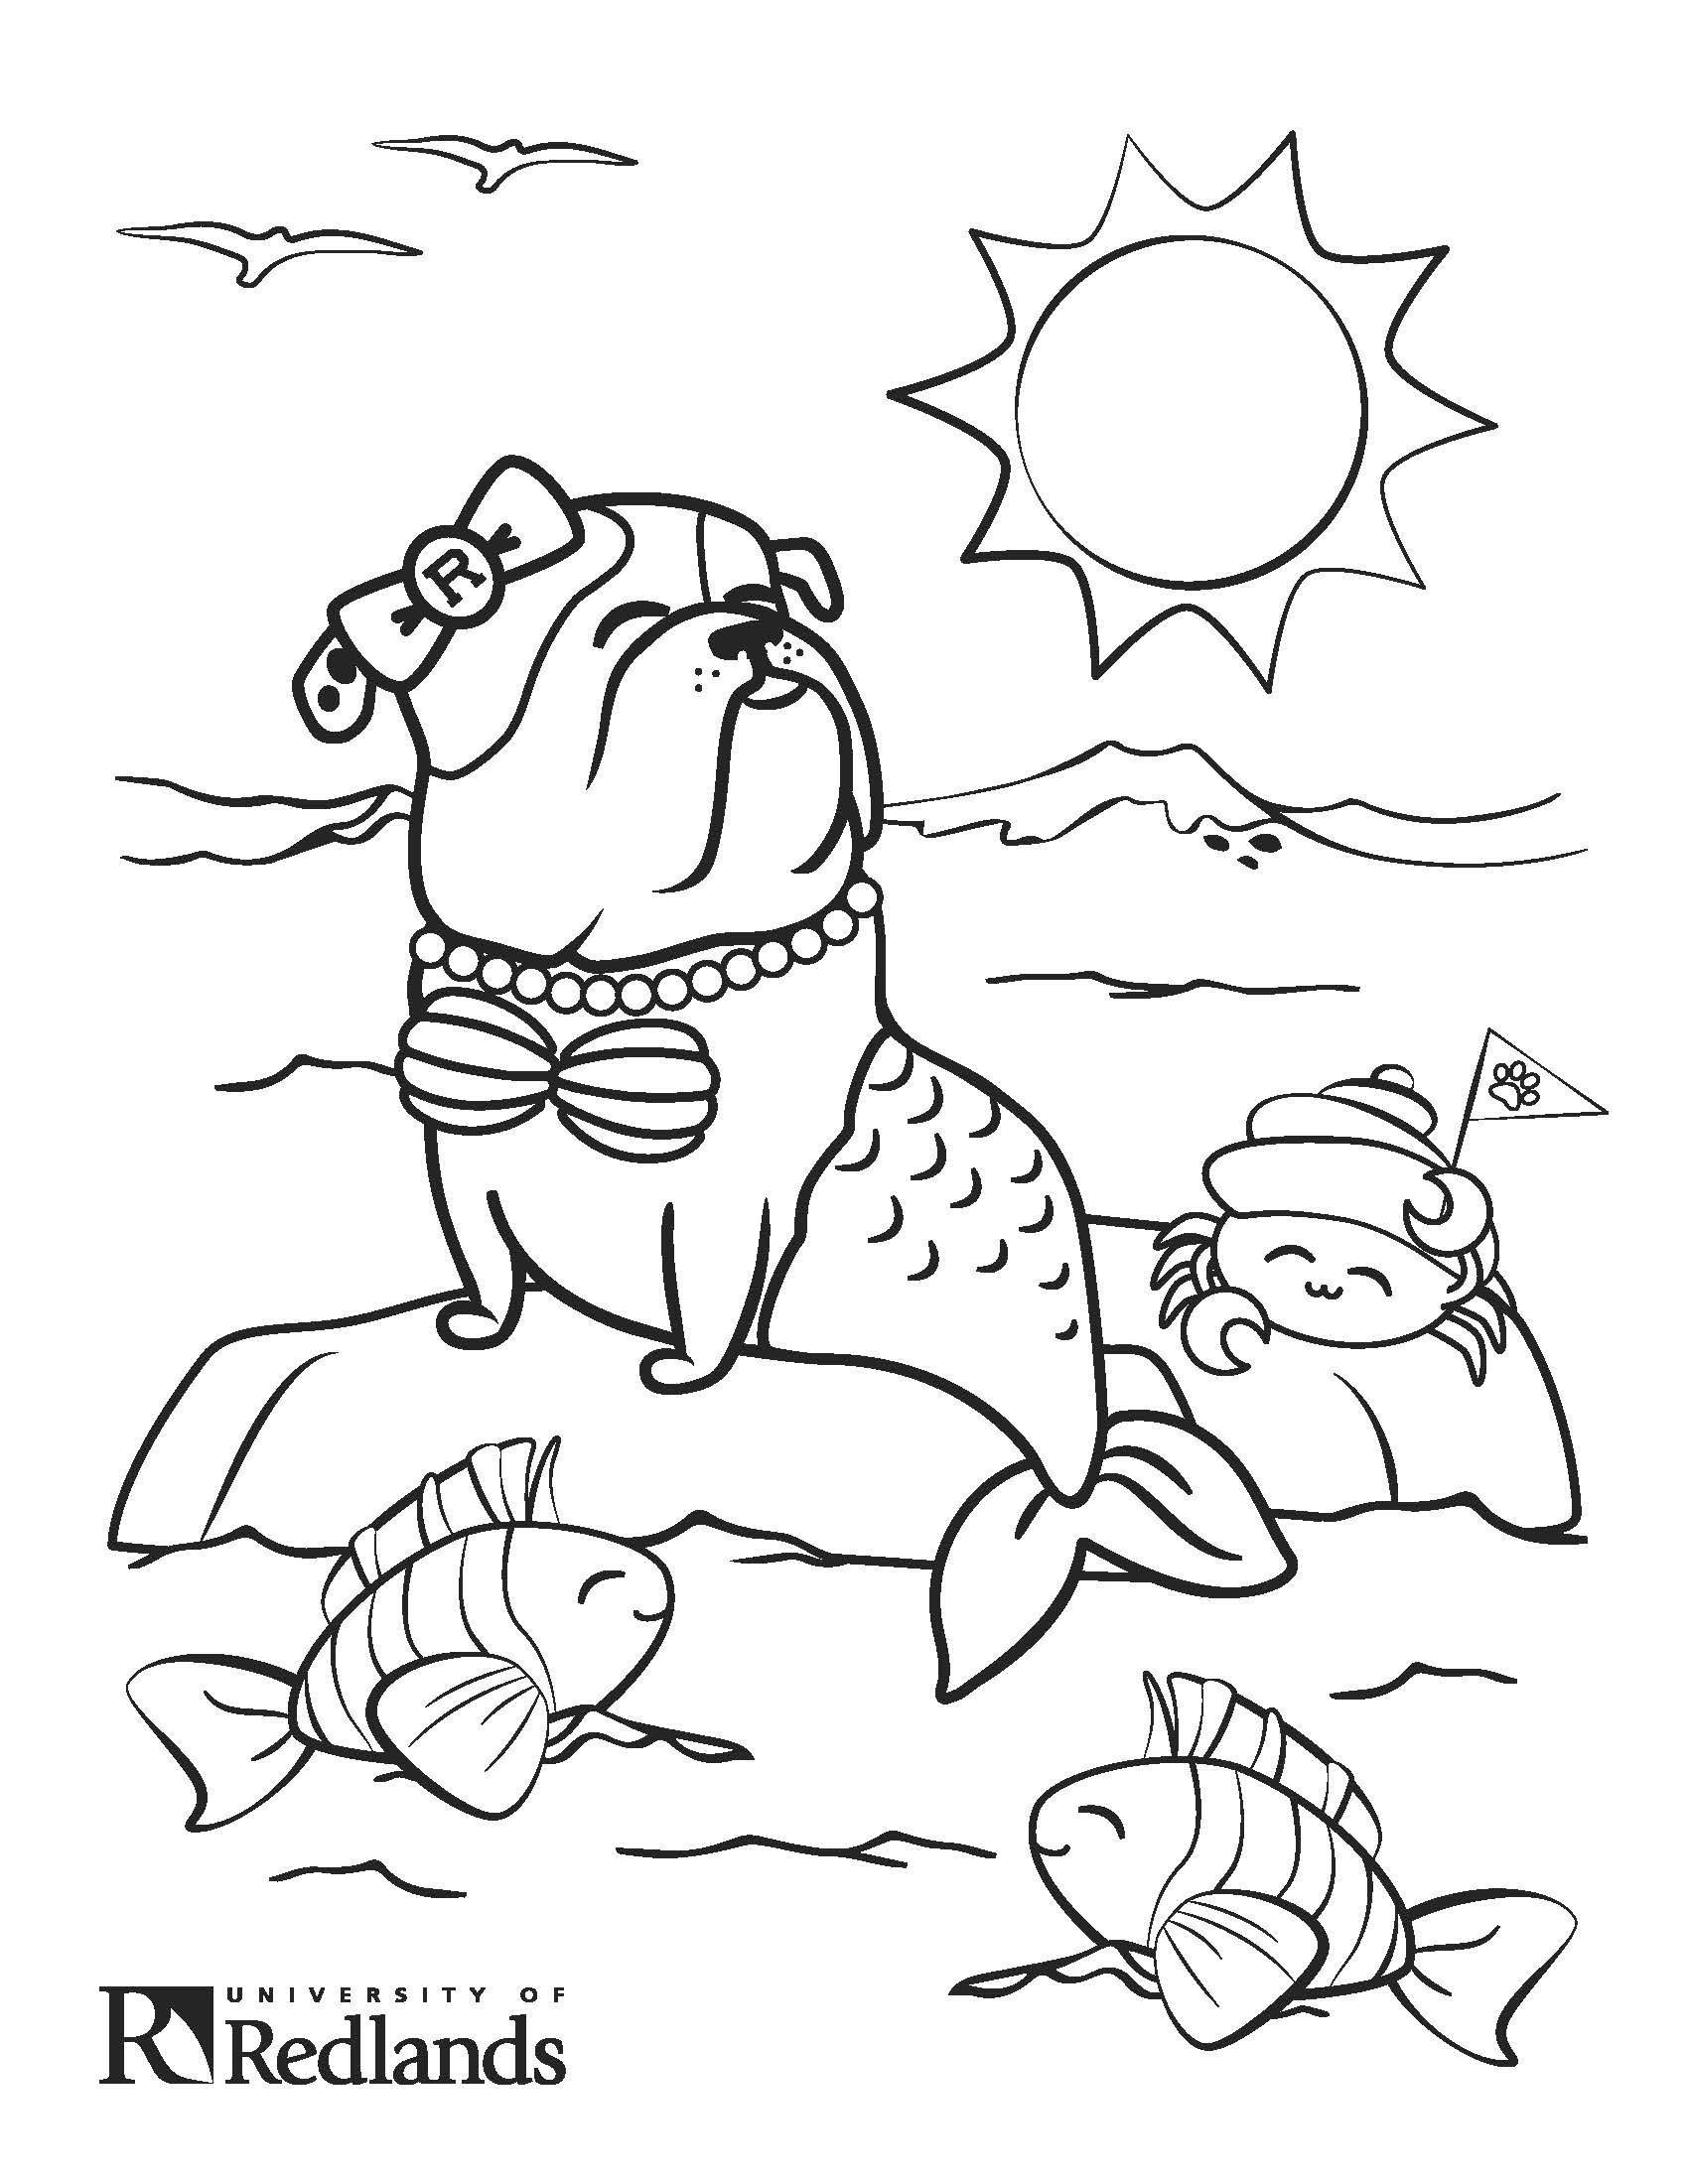 Addie's summer coloring page. (With images) Summer